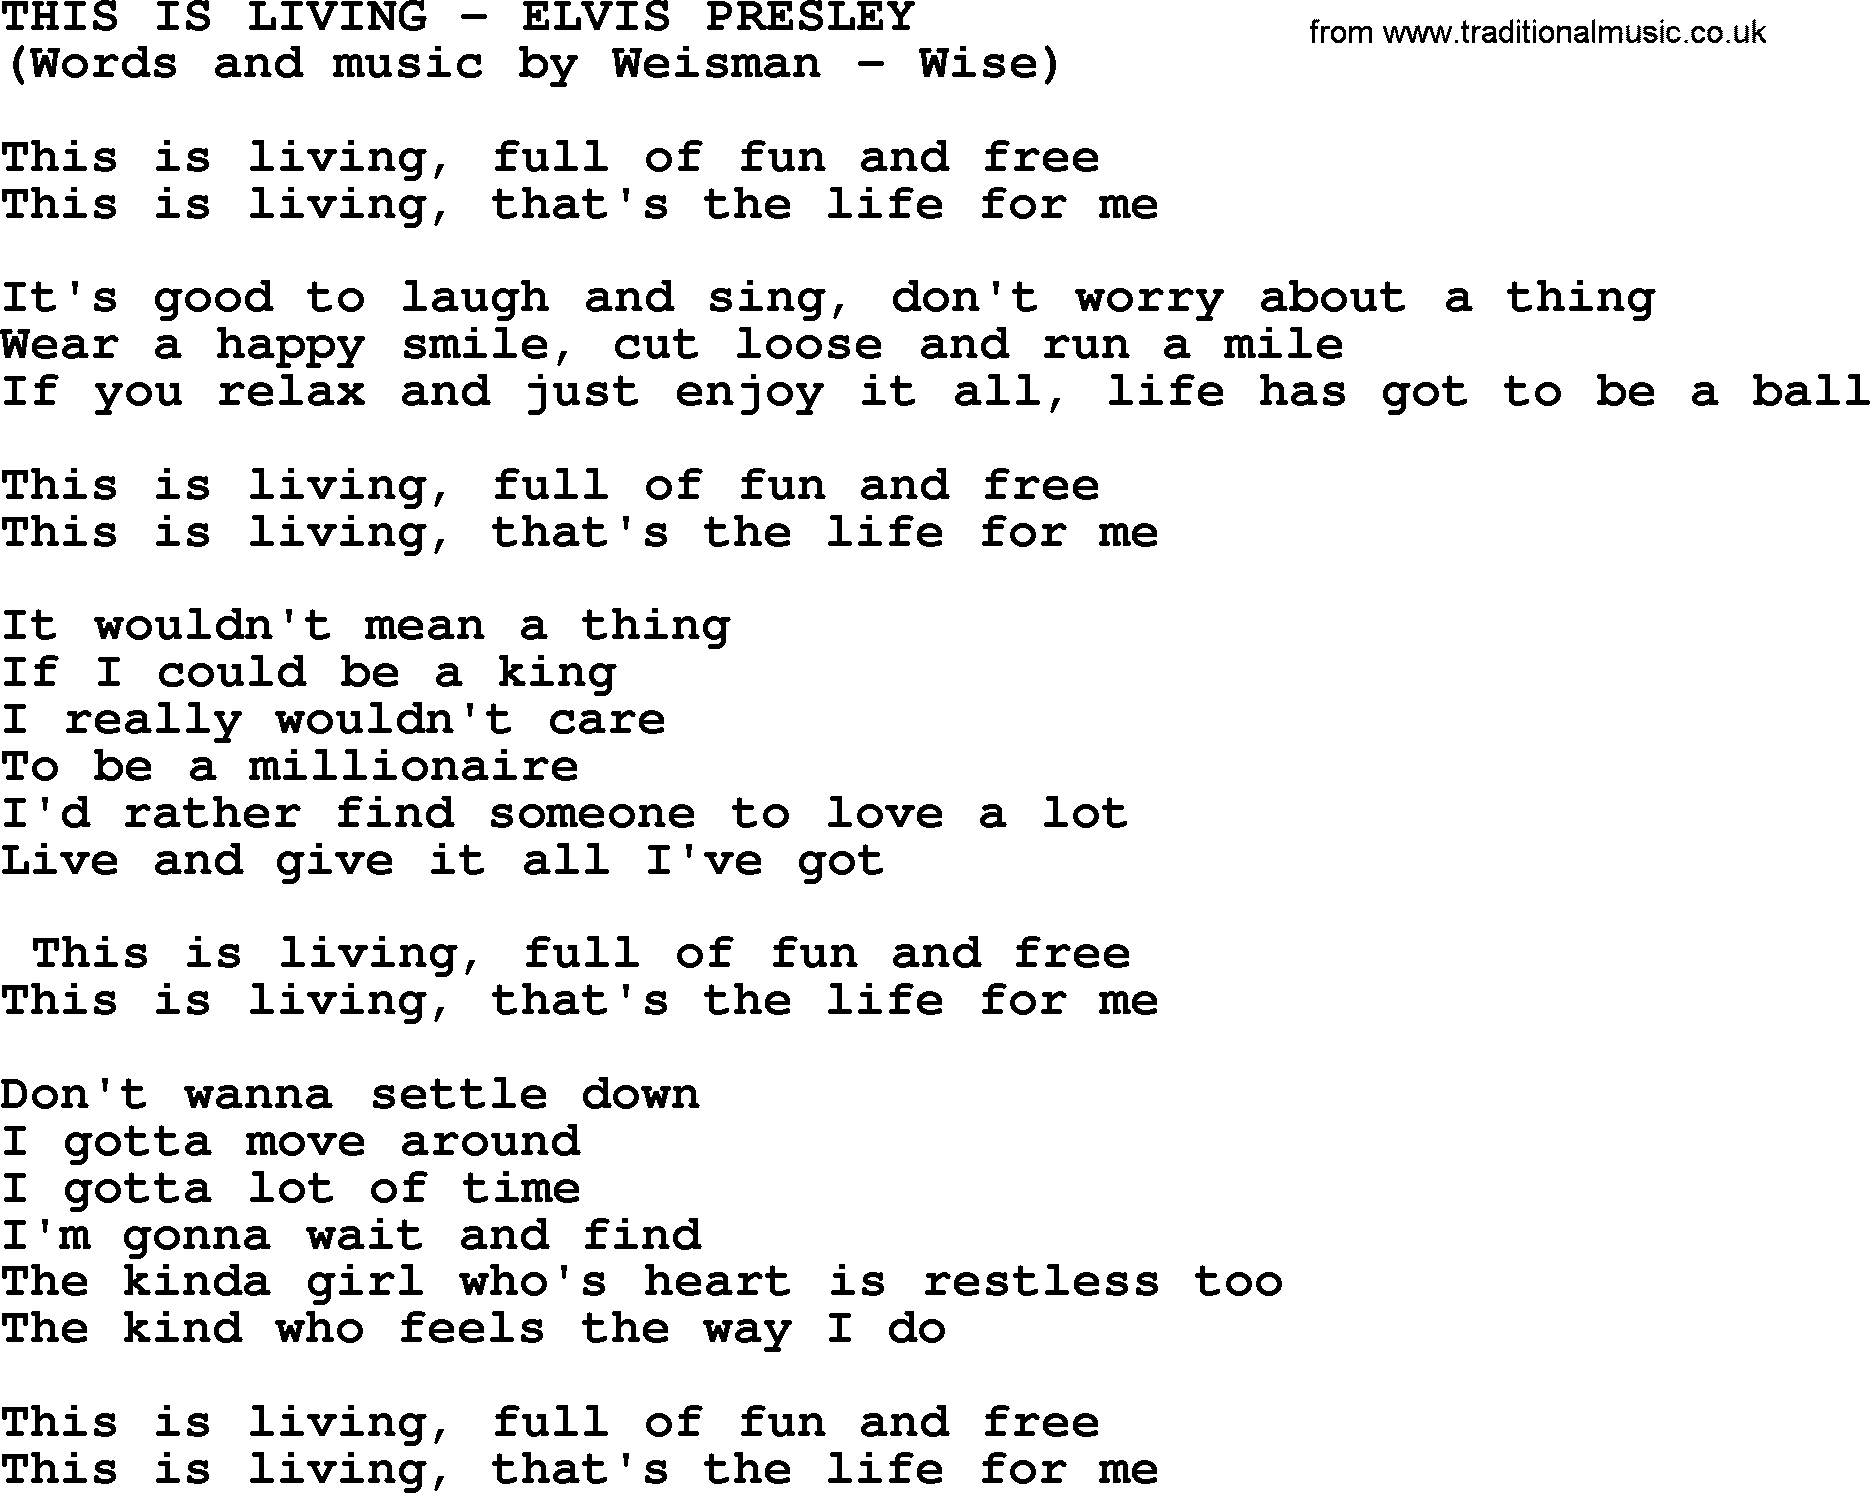 Dont worry be happy guitar chords image collections guitar this is living by elvis presley lyrics elvis presley song this is living lyrics fatherlandz image hexwebz Images